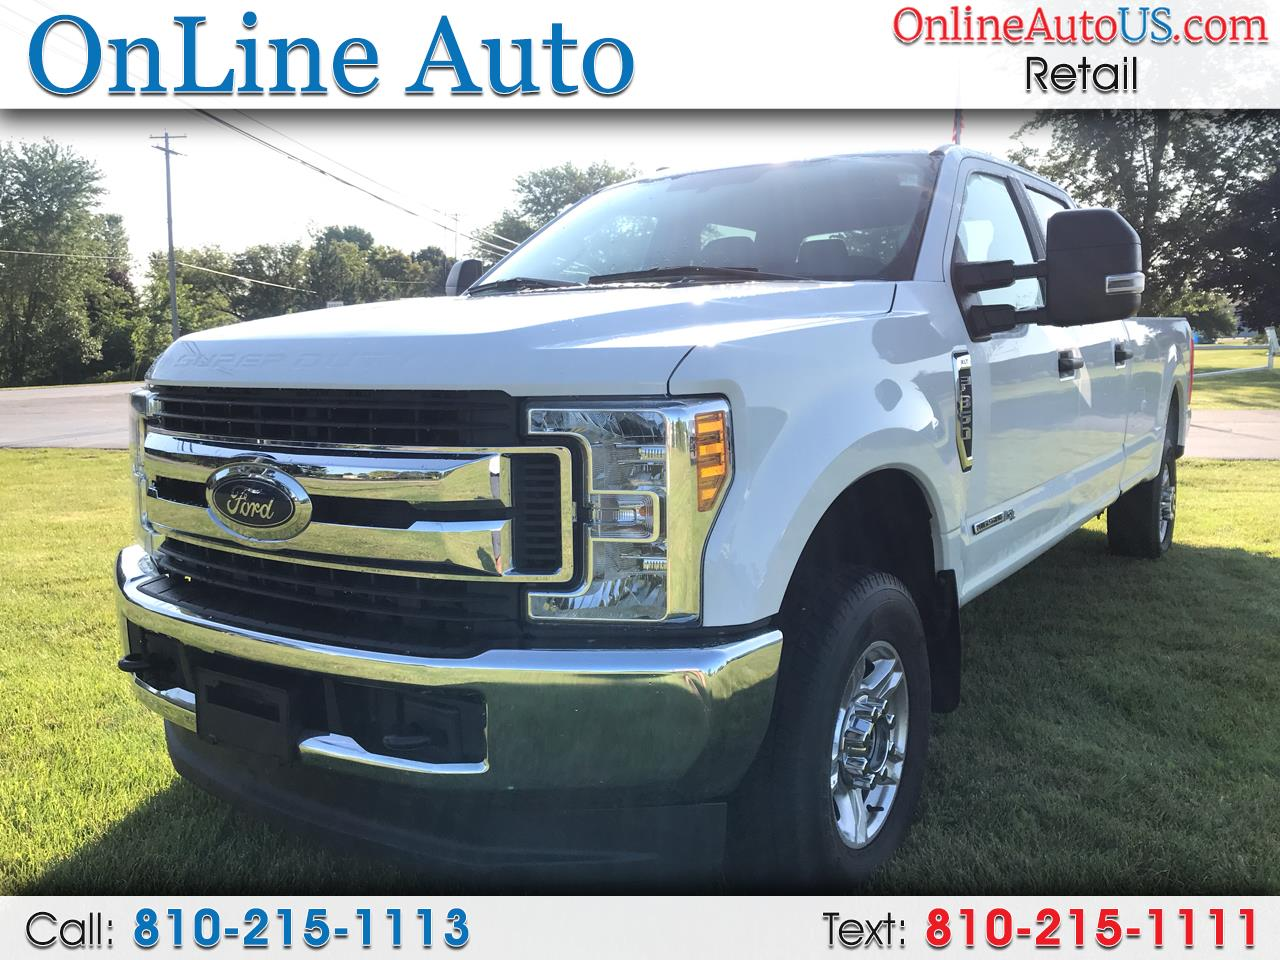 2017 Ford F-350 CREW CAB SUPER DUTY